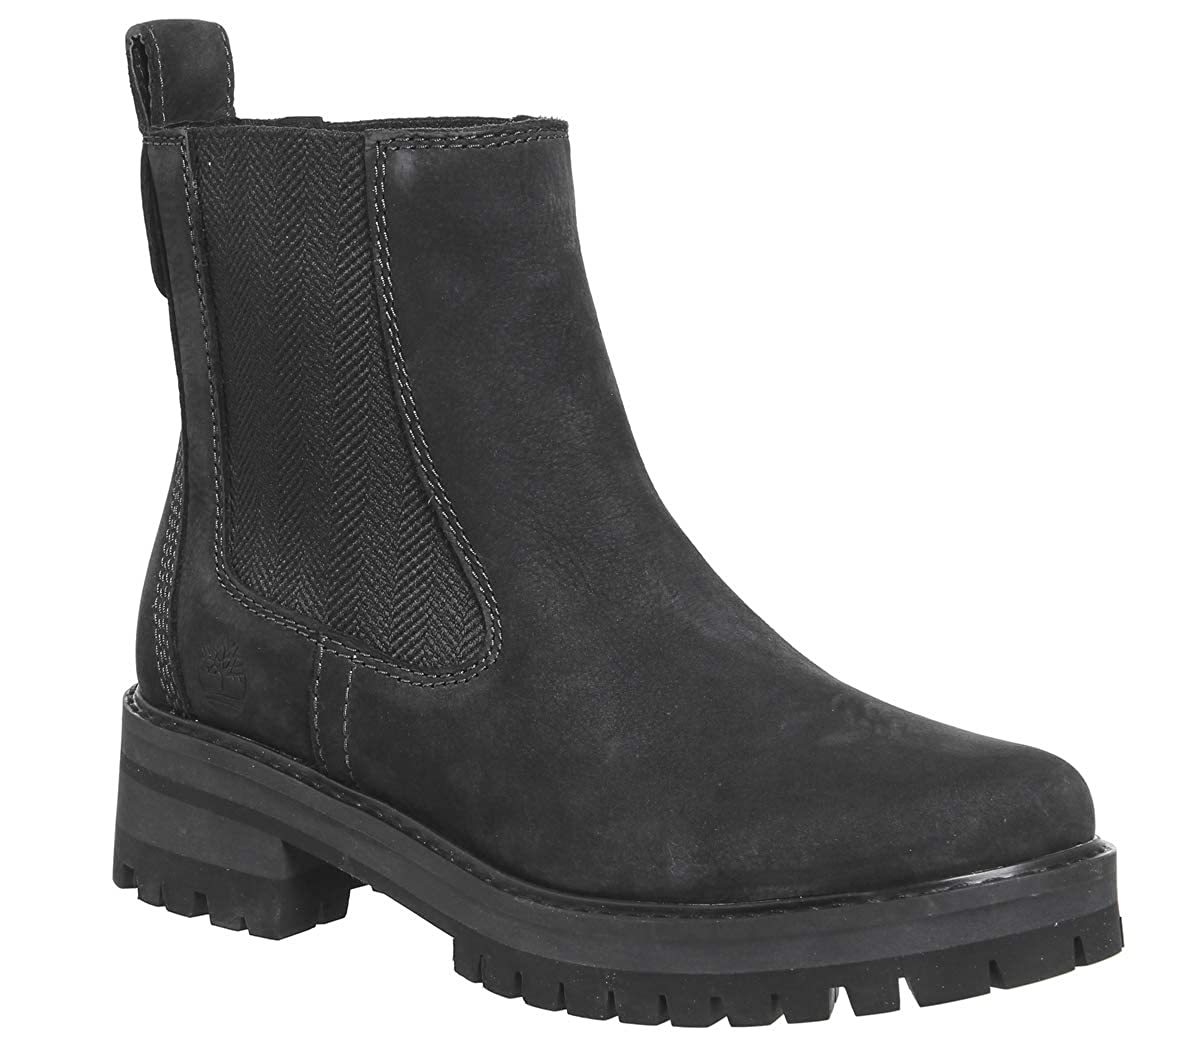 1b87e93acad Timberland Unisex Adults' Courmayeur Valley Chelsea Boots